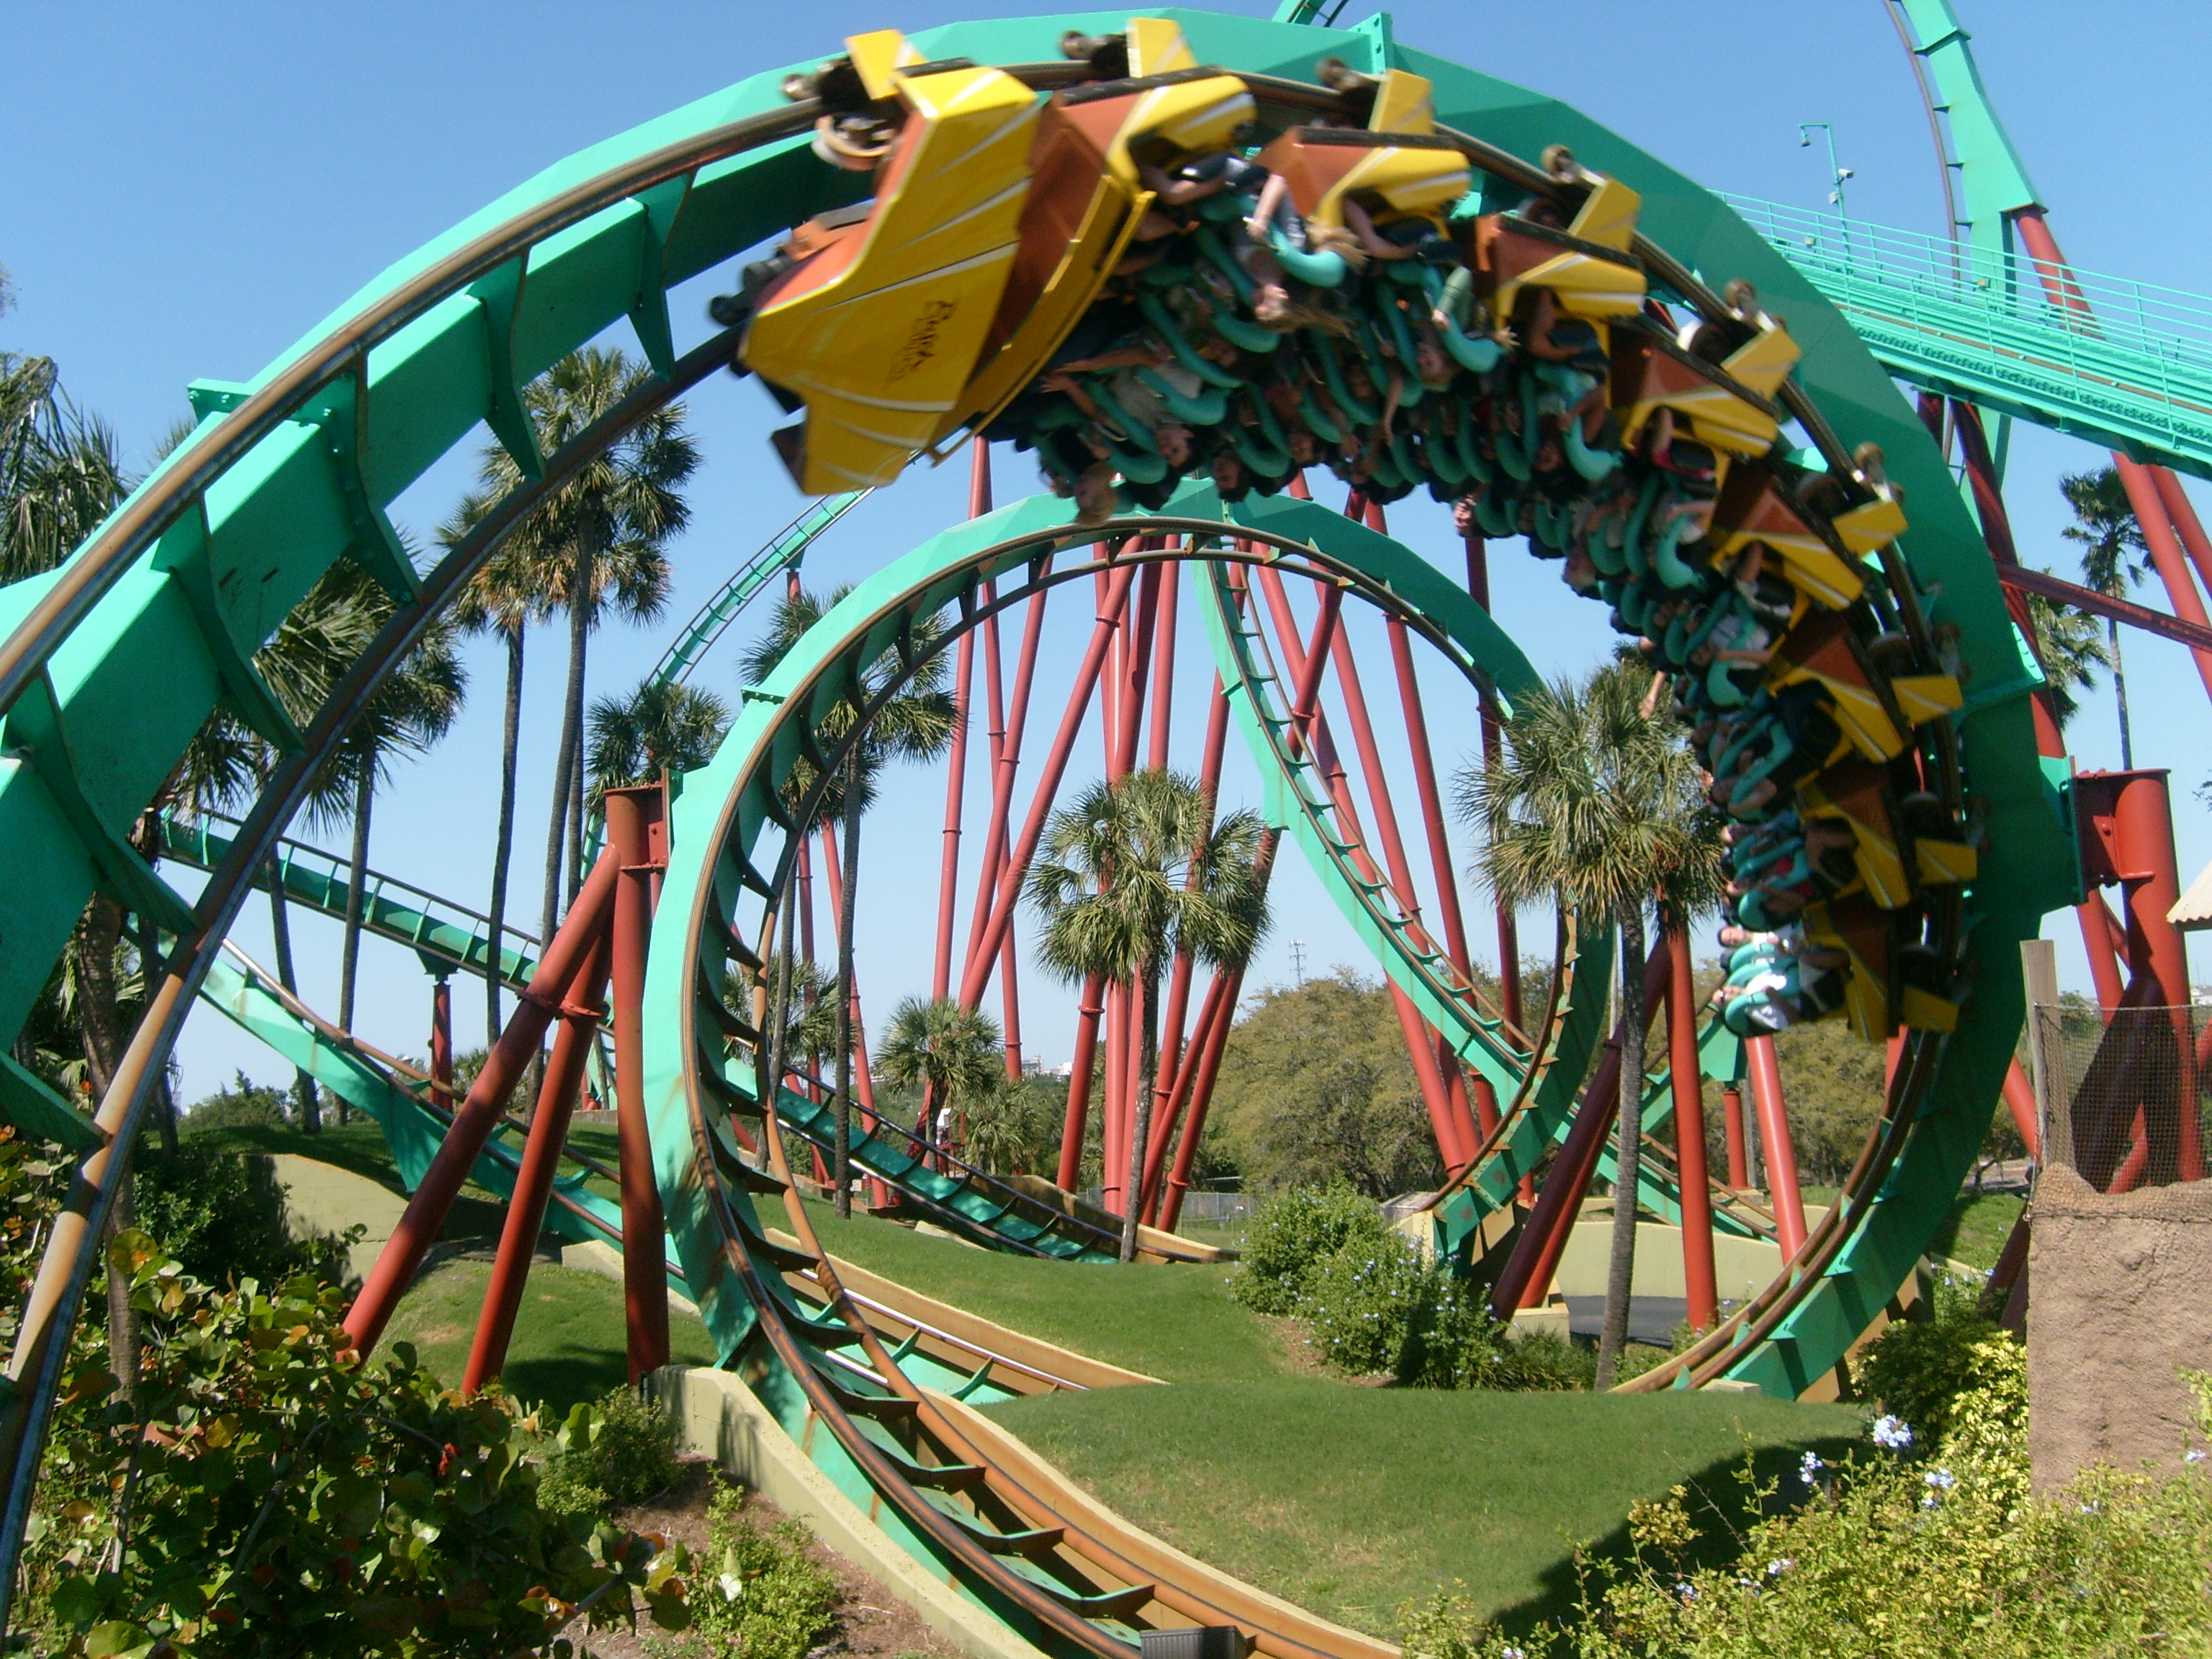 Busch gardens tampa theme parks and travels - Roller coasters at busch gardens ...